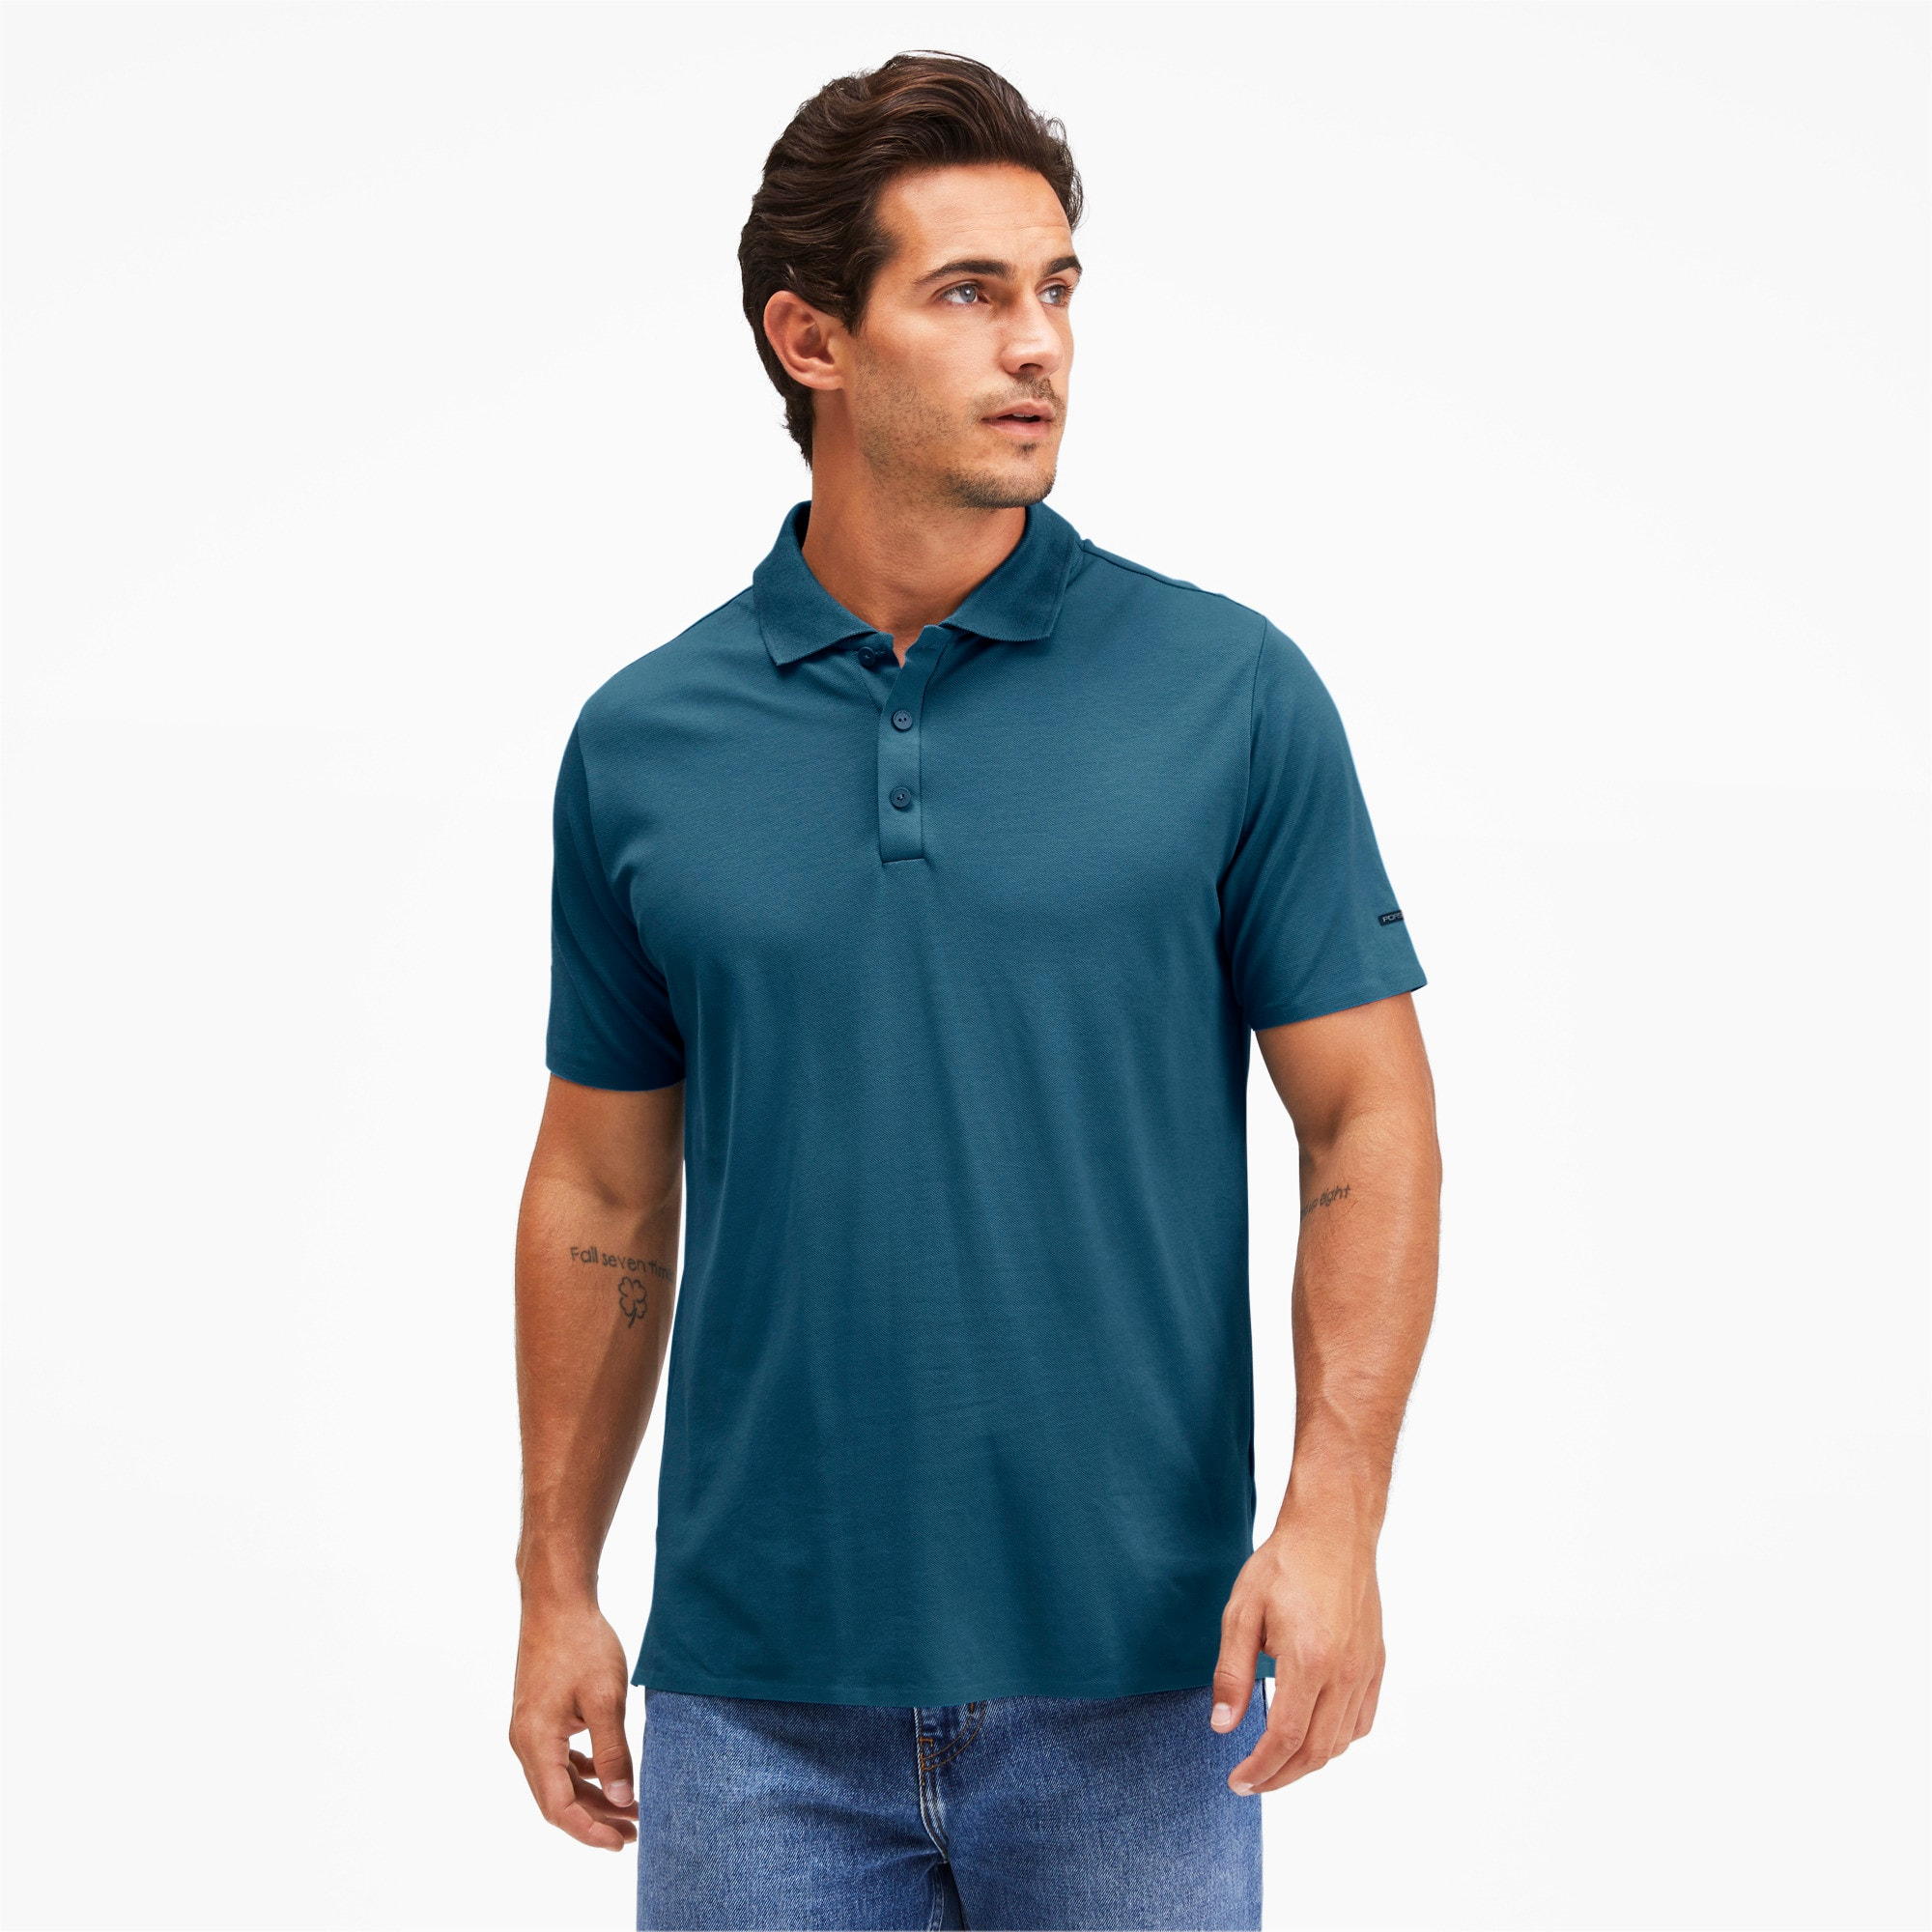 Thumbnail 1 of Men's Motorsports Polo, Moroccan Blue, medium